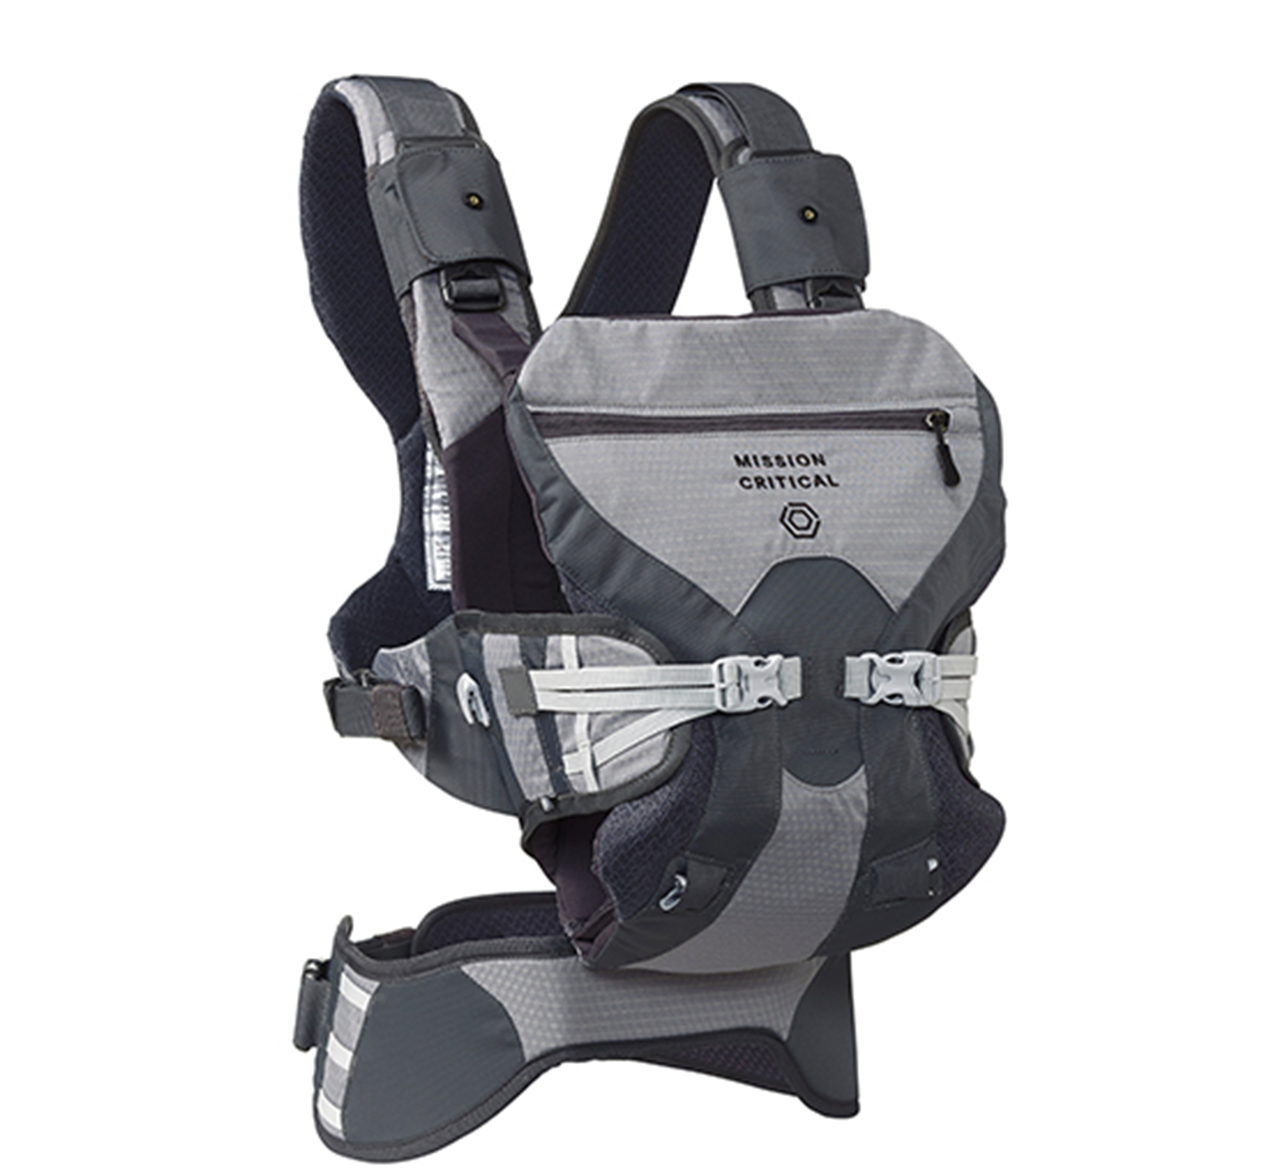 S.02 Baby Carrier Features - Outland Kit - Mission Critical